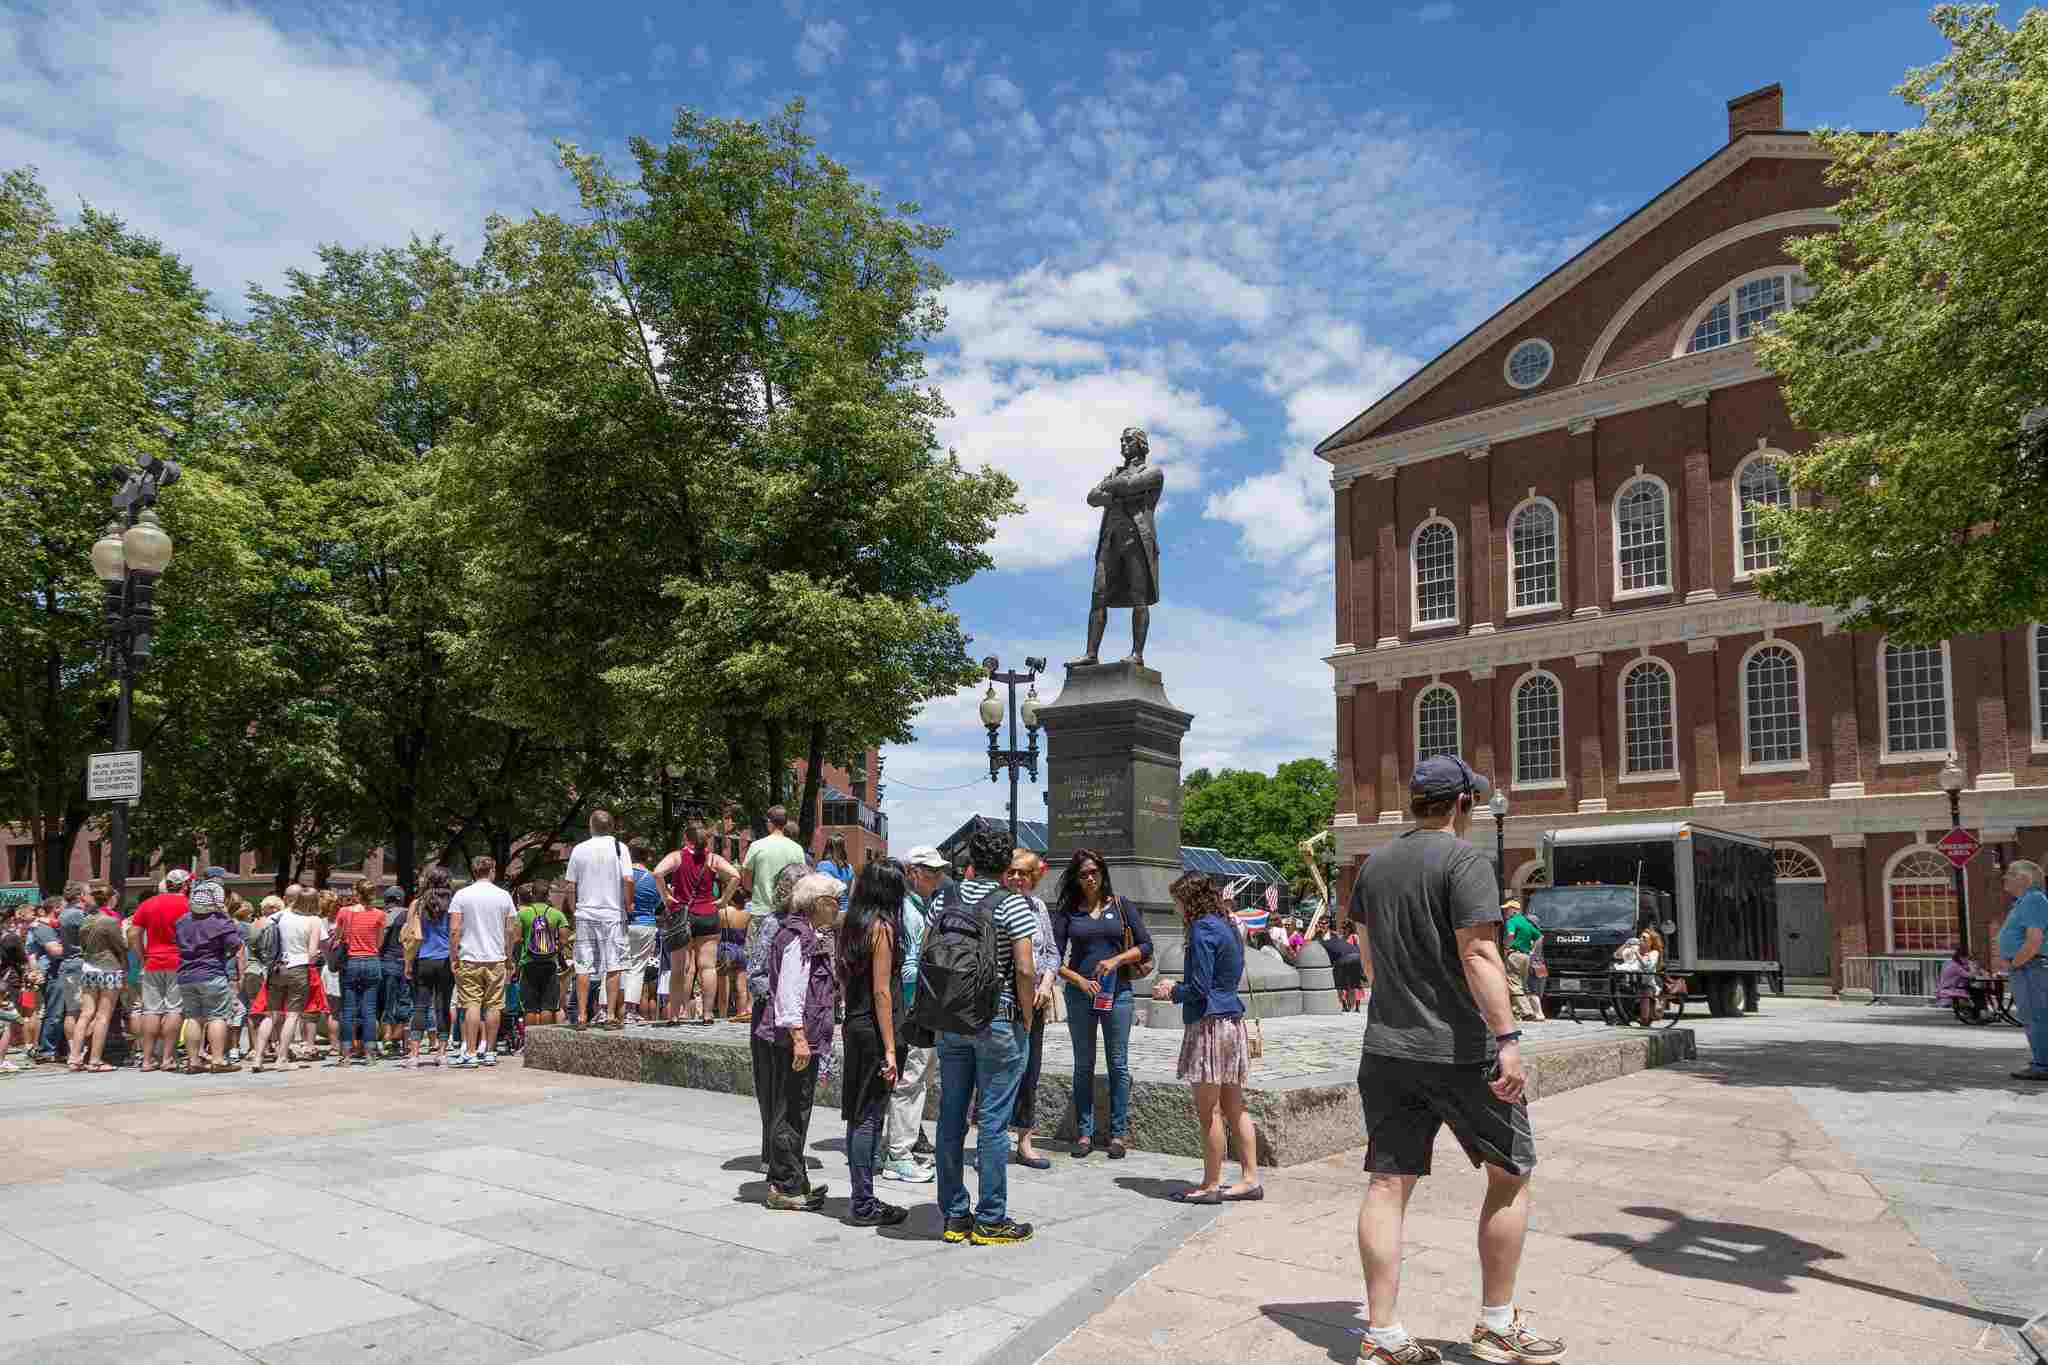 Freedom Trail Faneuil Hall Boston